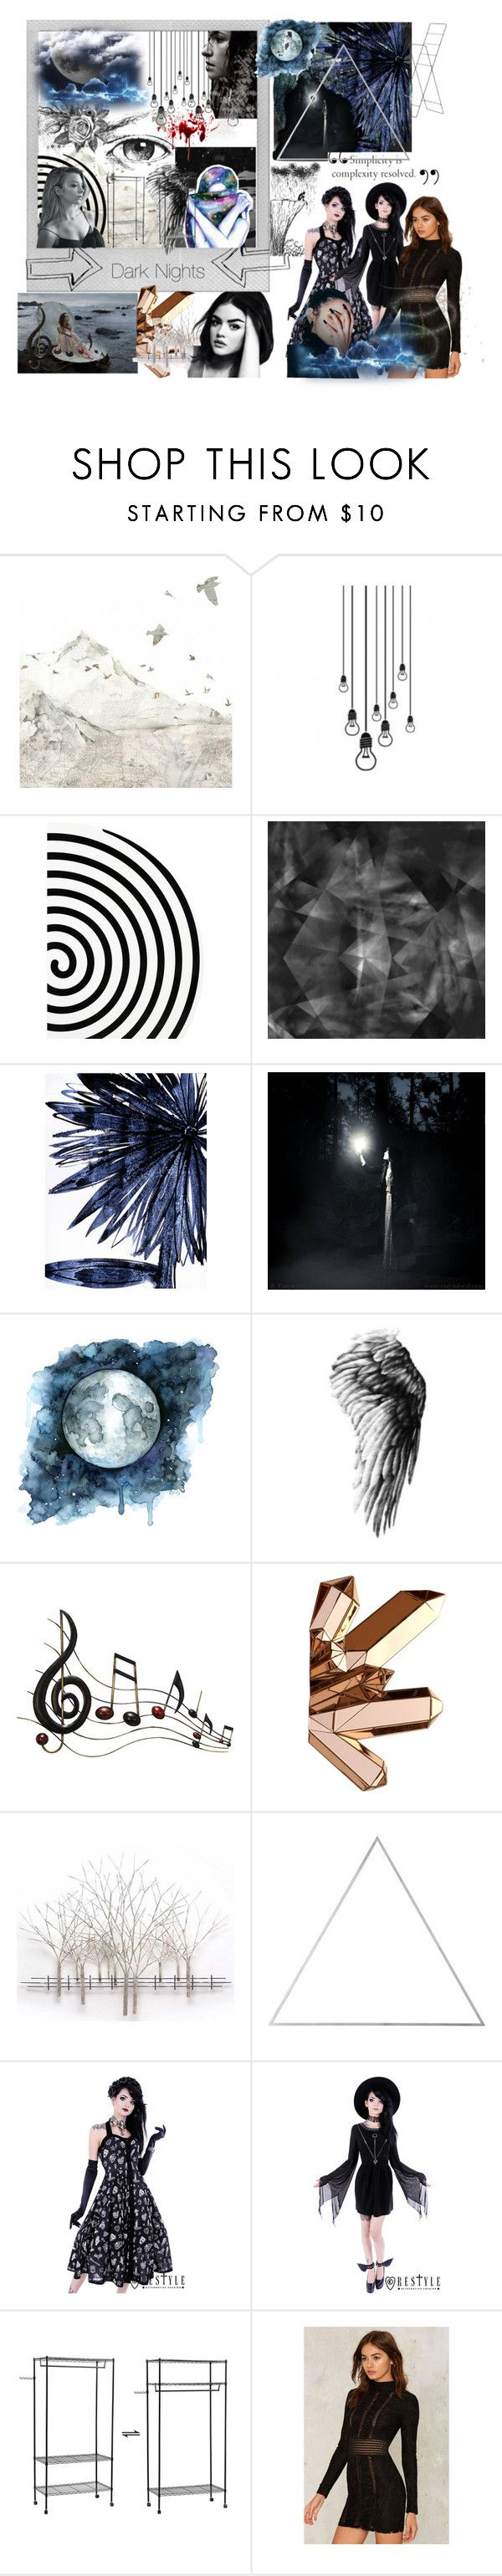 """""""Dancing in the Starlight"""" by duluoz ❤ liked on Polyvore featuring beauty, Polaroid, WALL, Boudicca, Altreforme, Leftbank Art, Lauren Ralph Lauren, Benzara, Home Decorators Collection and Menu"""